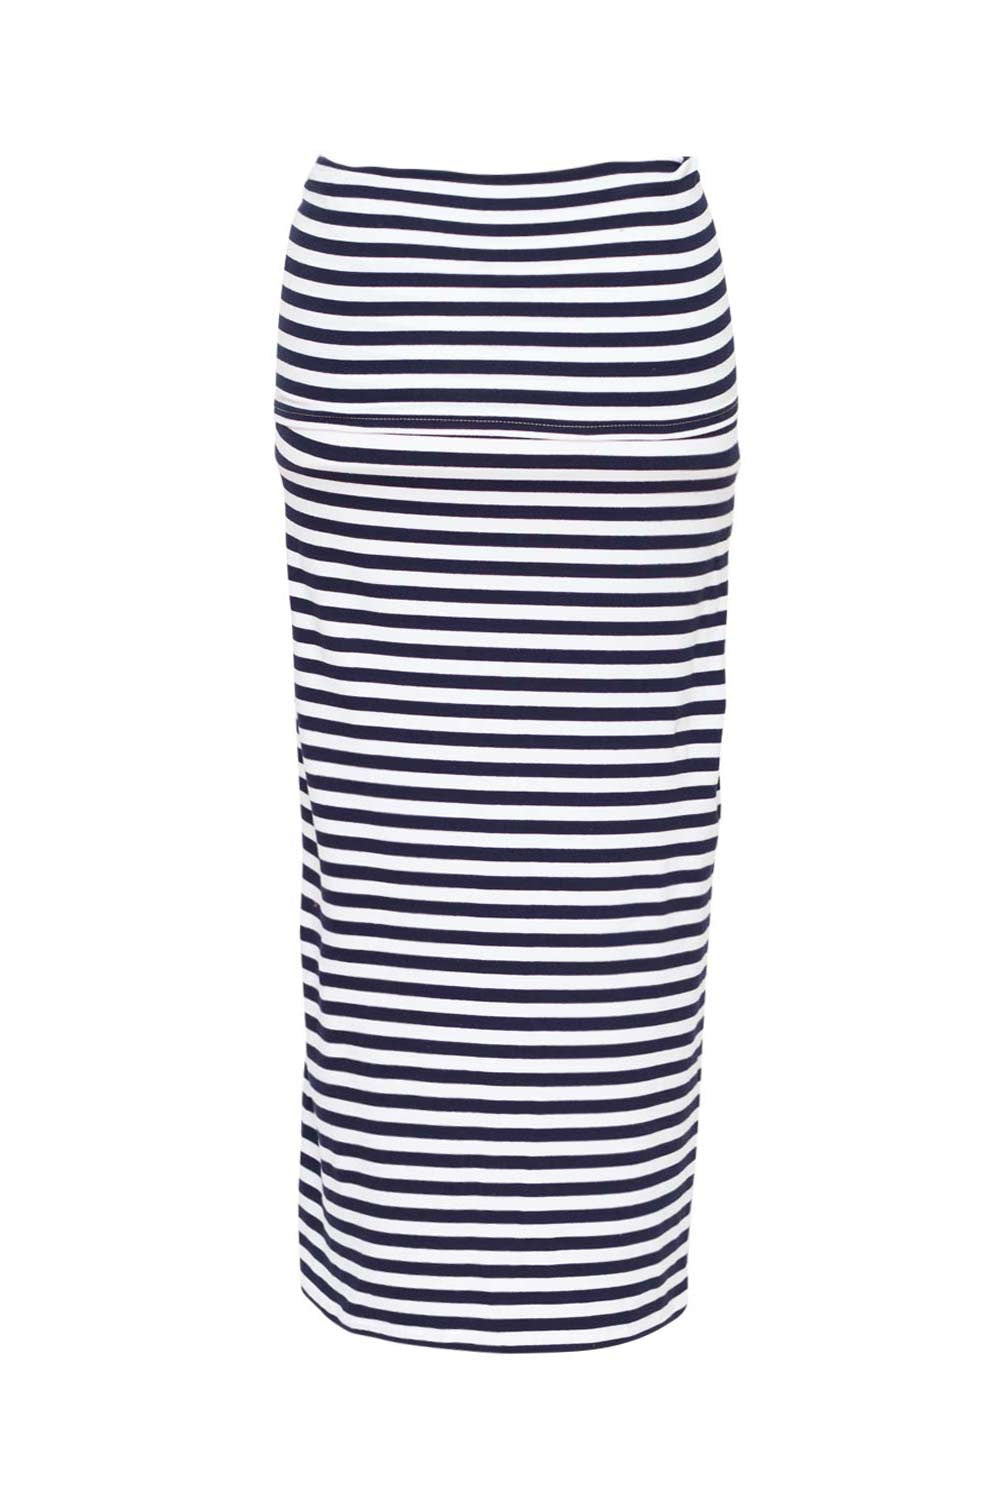 zephyr-wonder-tube-skirt-navy-stripe